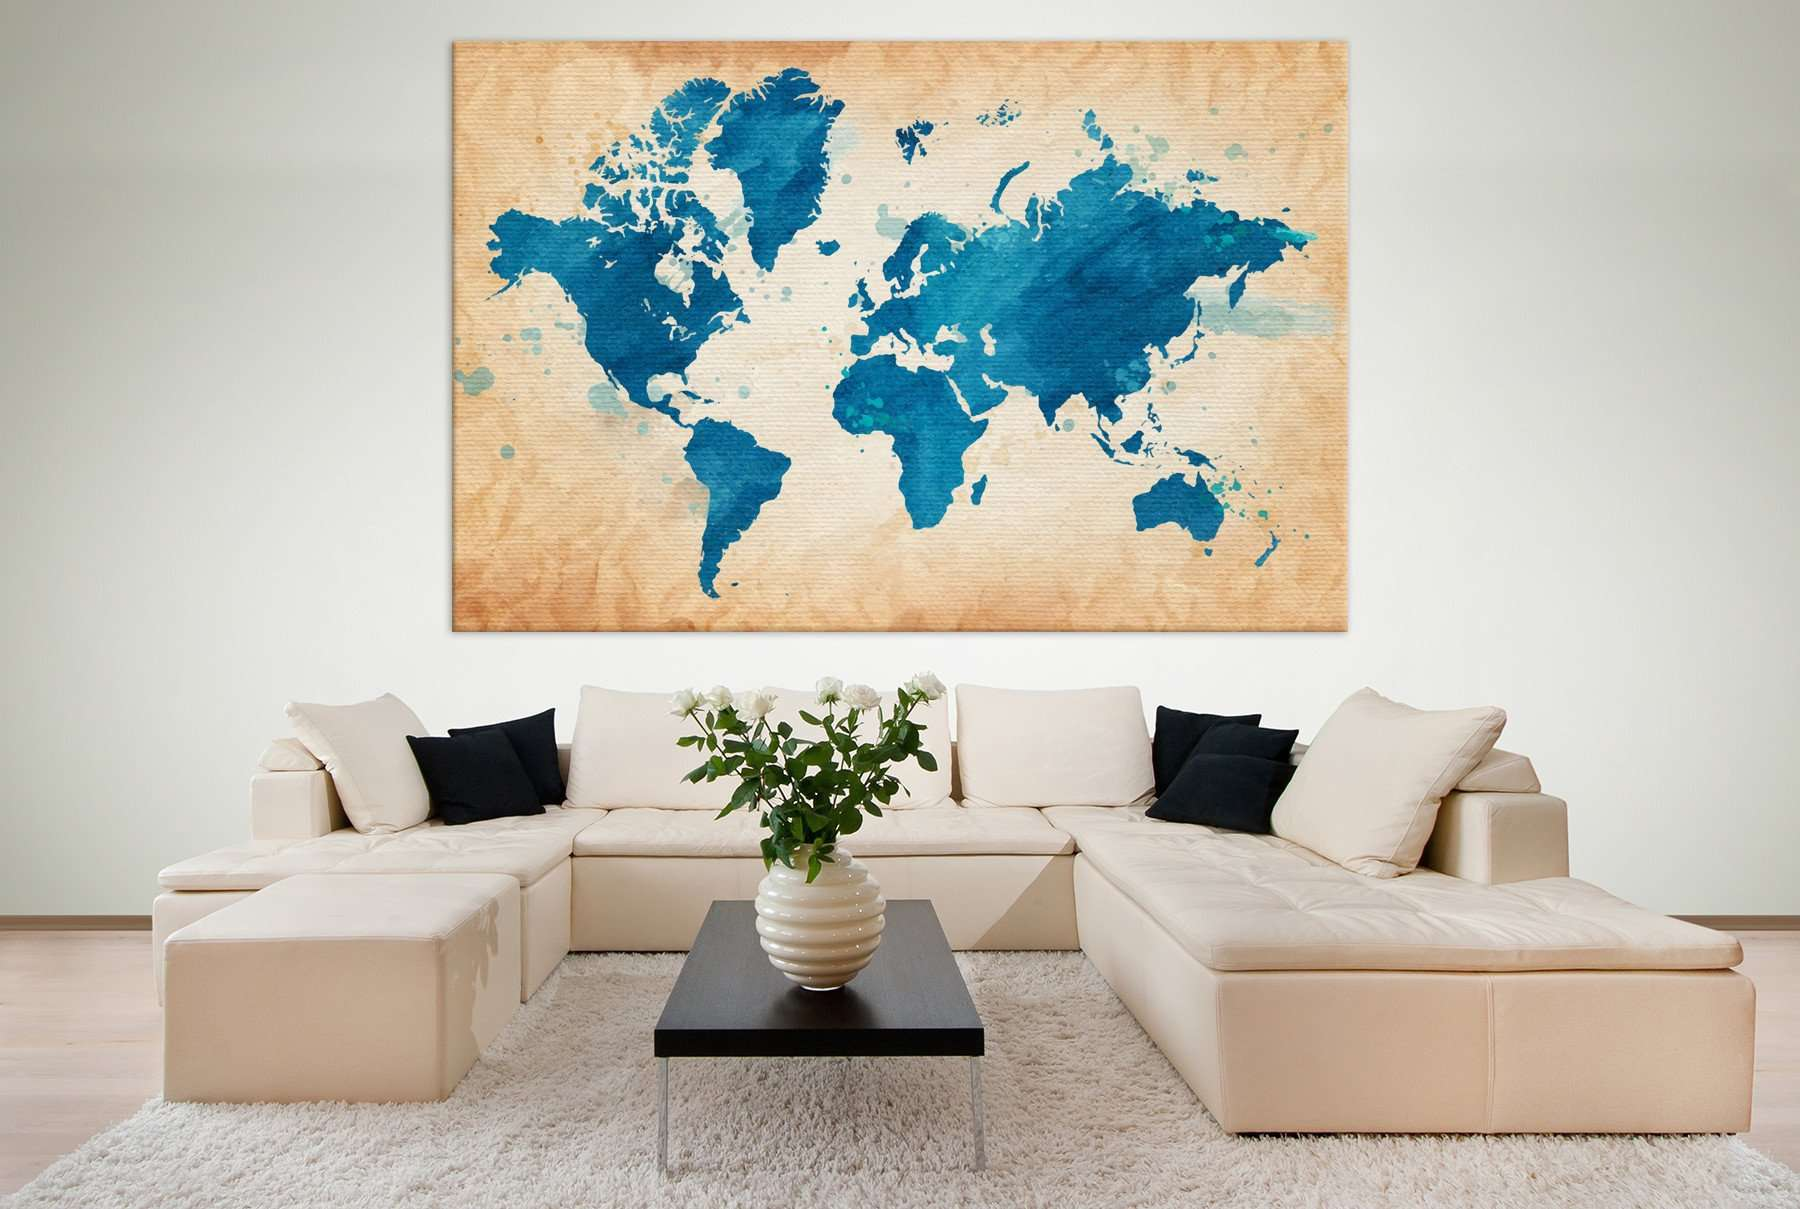 Blue World Map №703 Ready to Hang Canvas Print